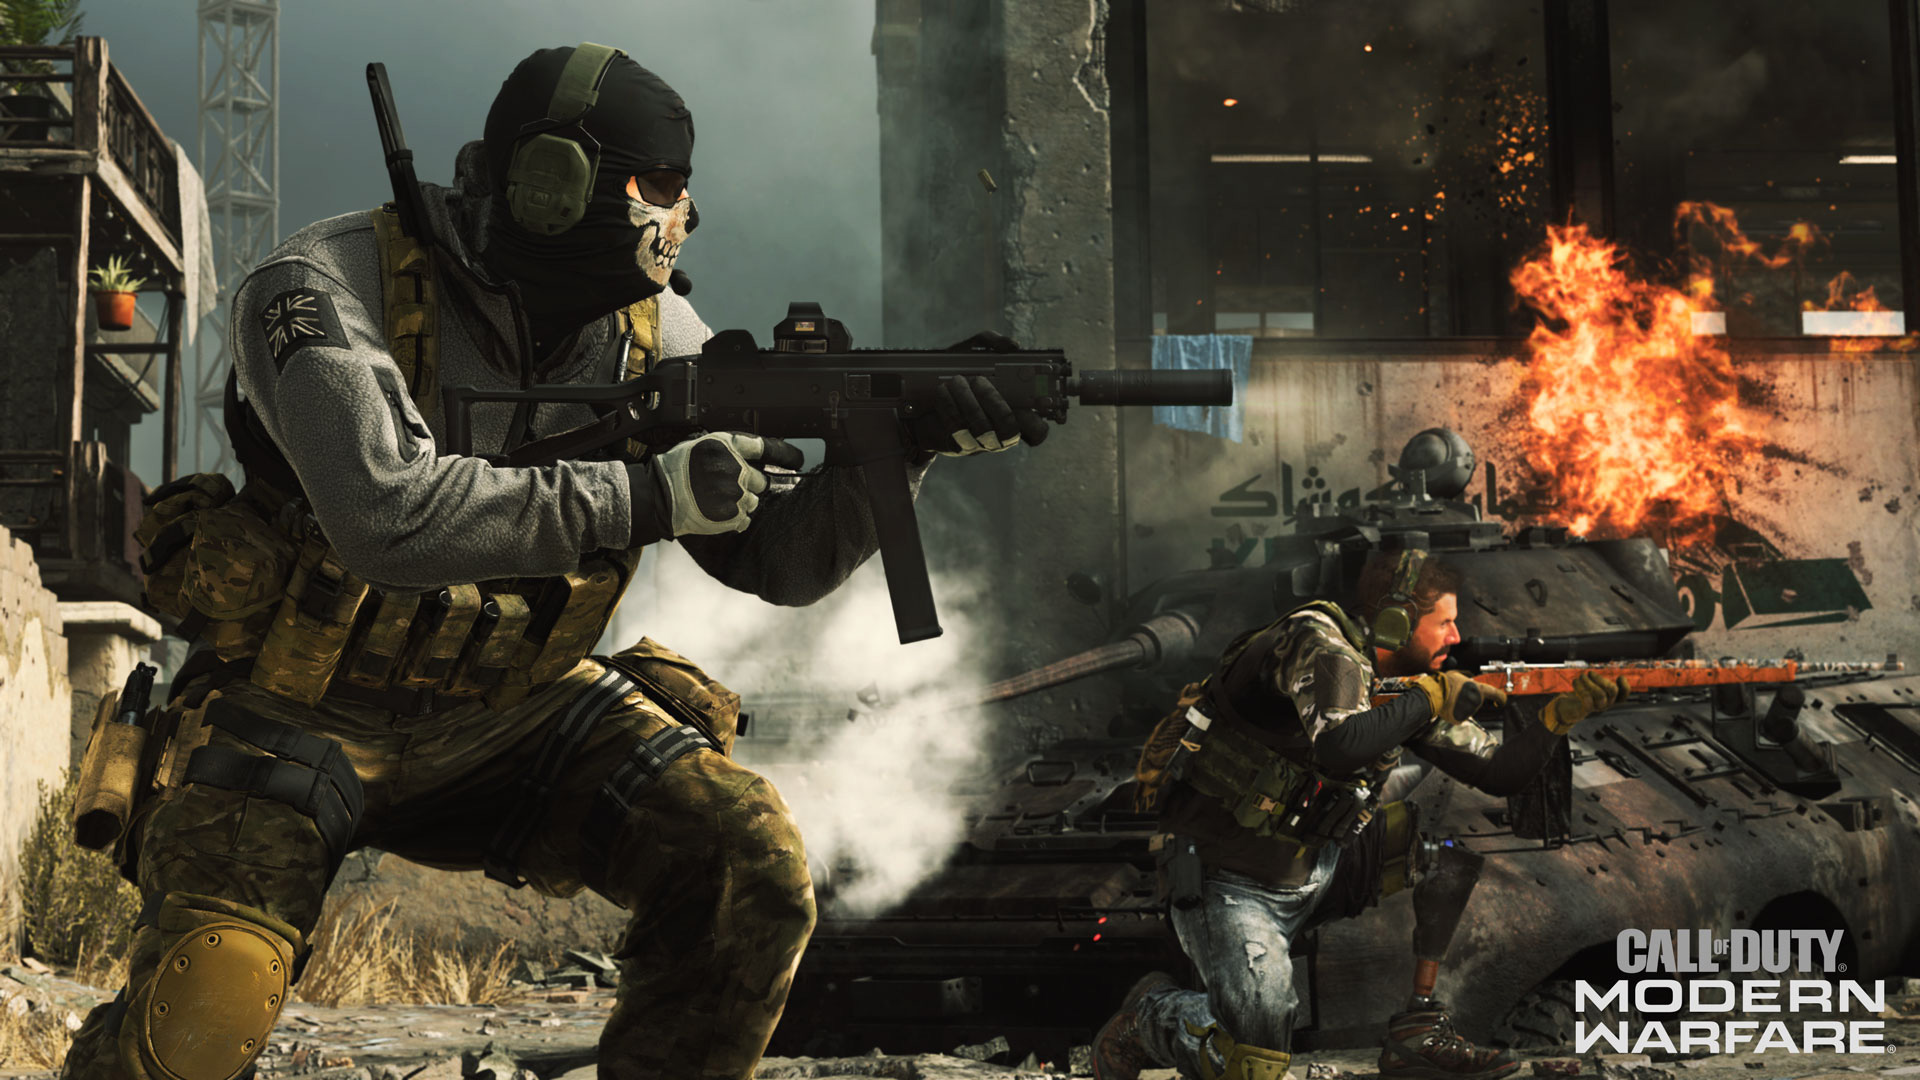 Call of Duty: Warzone has a free trial for Modern Warfare multiplayer until April 27 screenshot